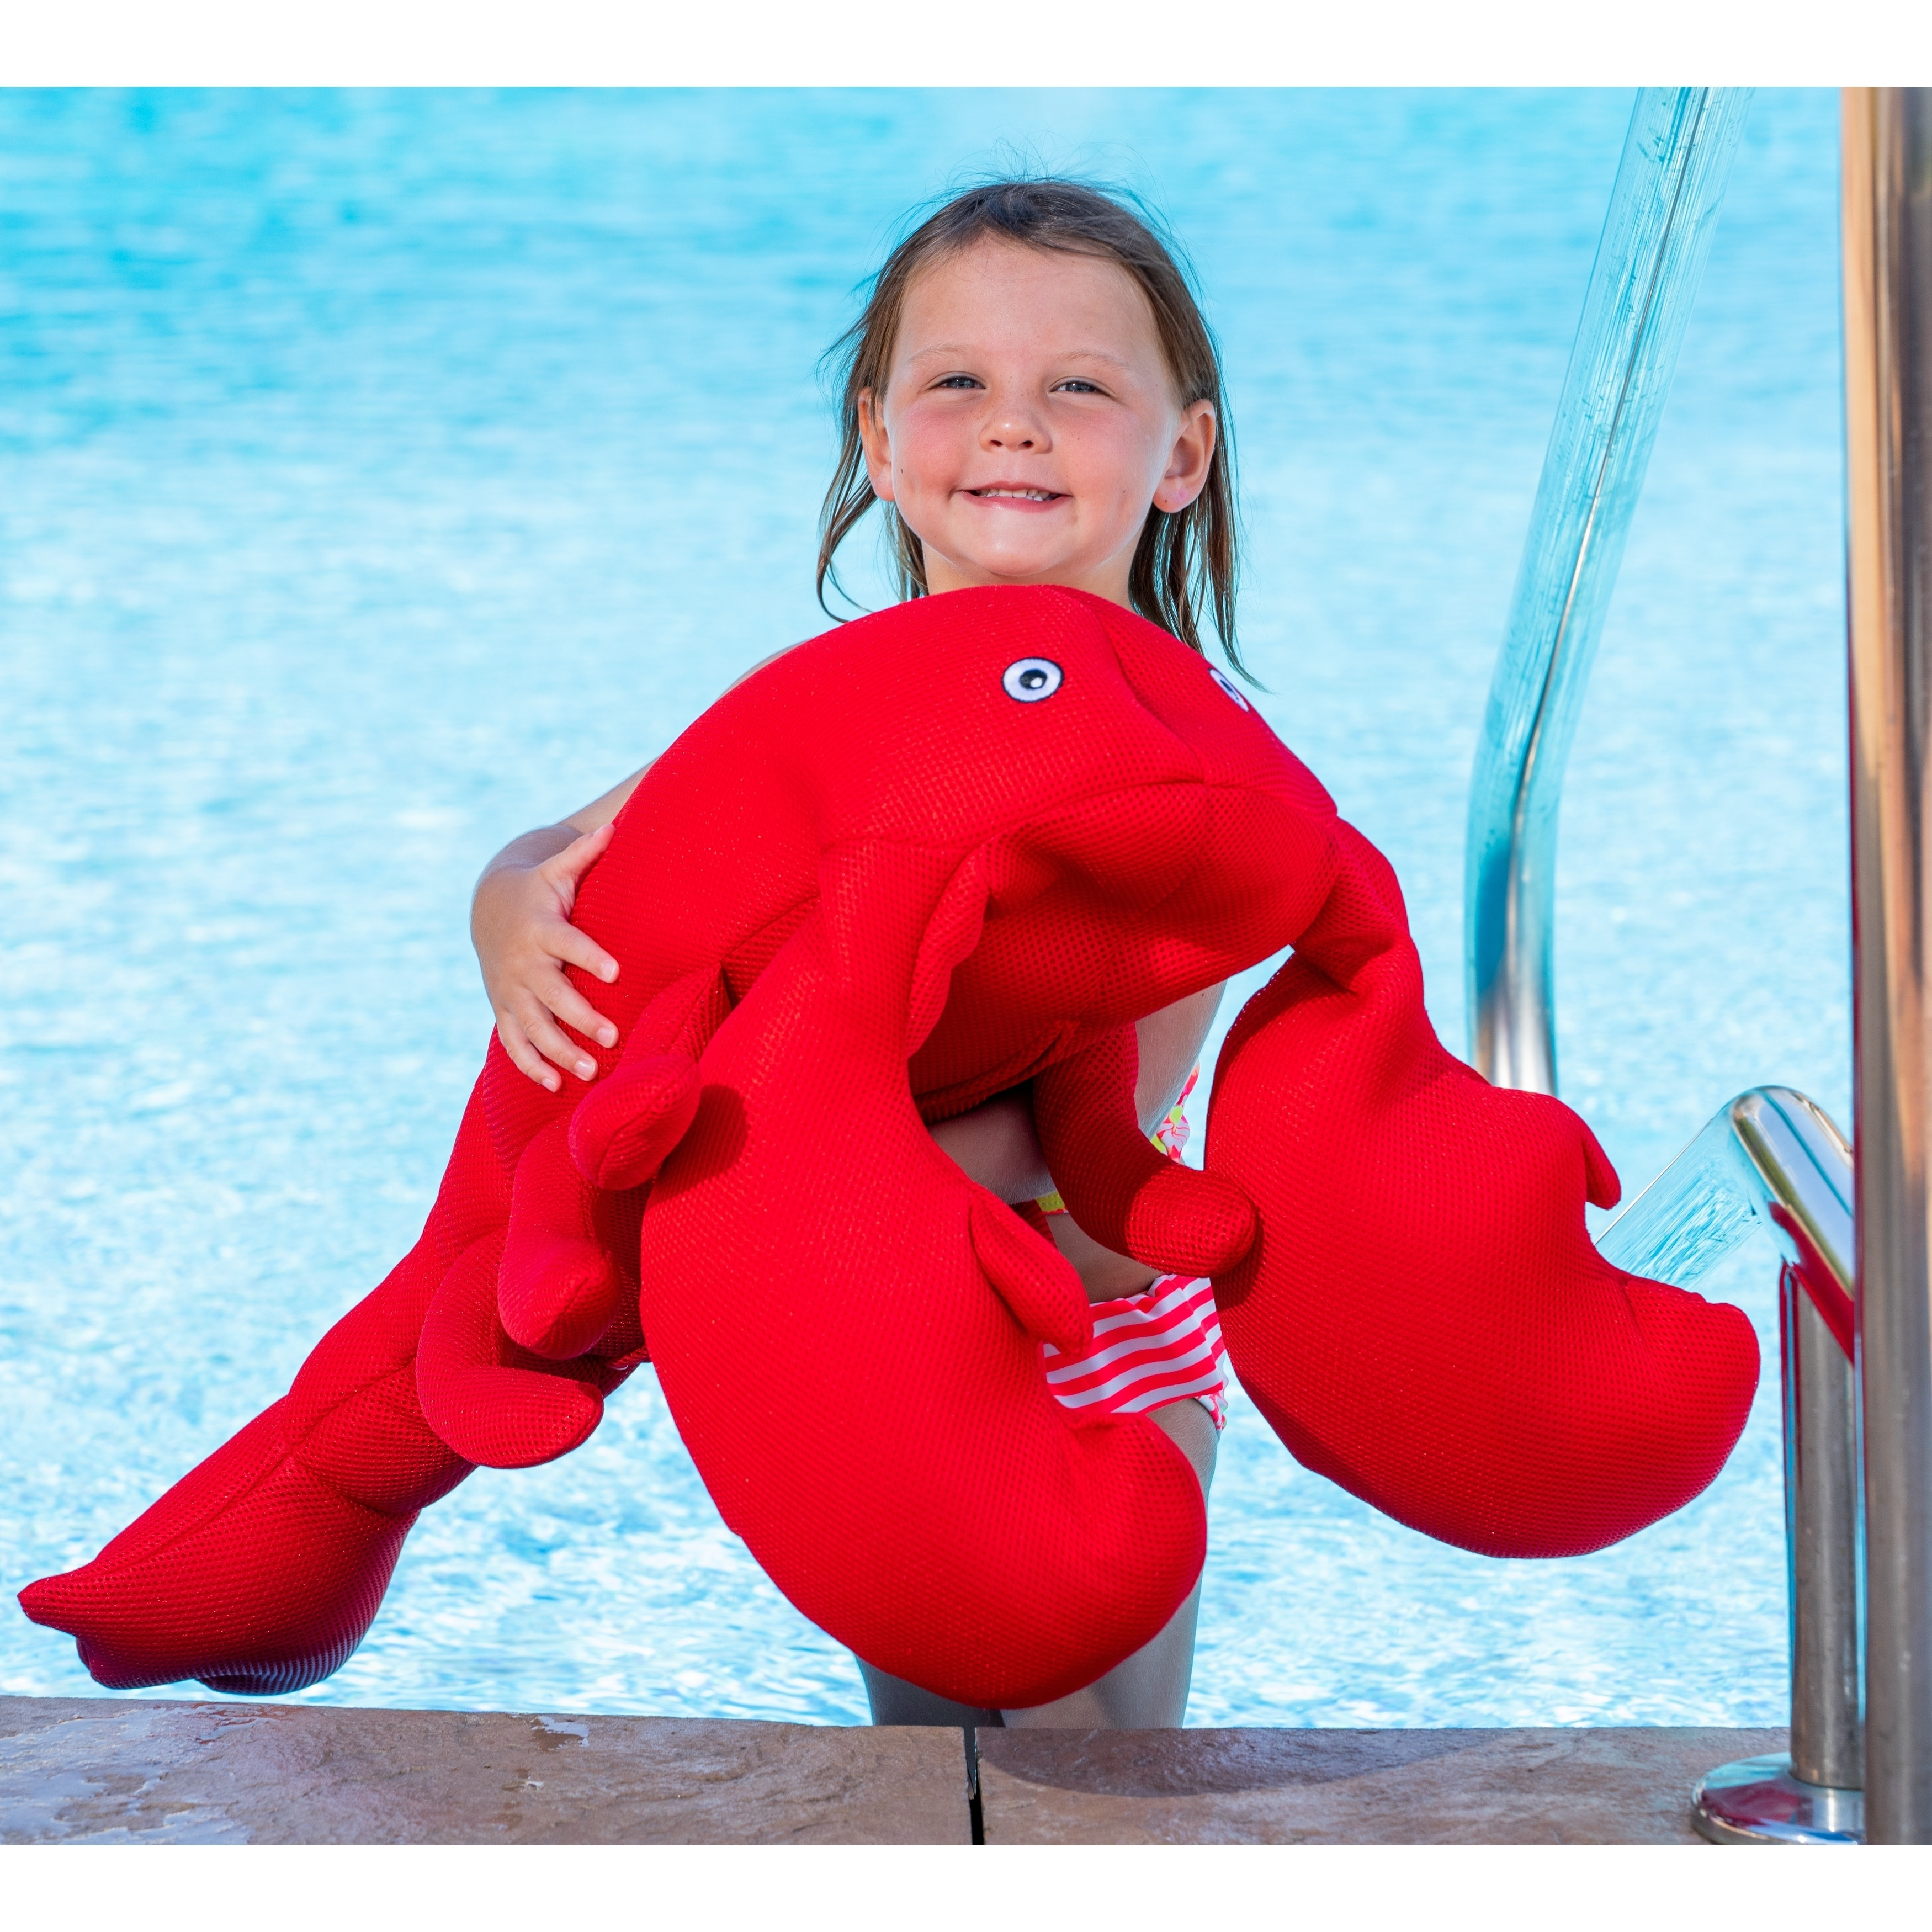 Wondrous Lobster Bean Bag Float For Swimming Pools Red Ocoug Best Dining Table And Chair Ideas Images Ocougorg